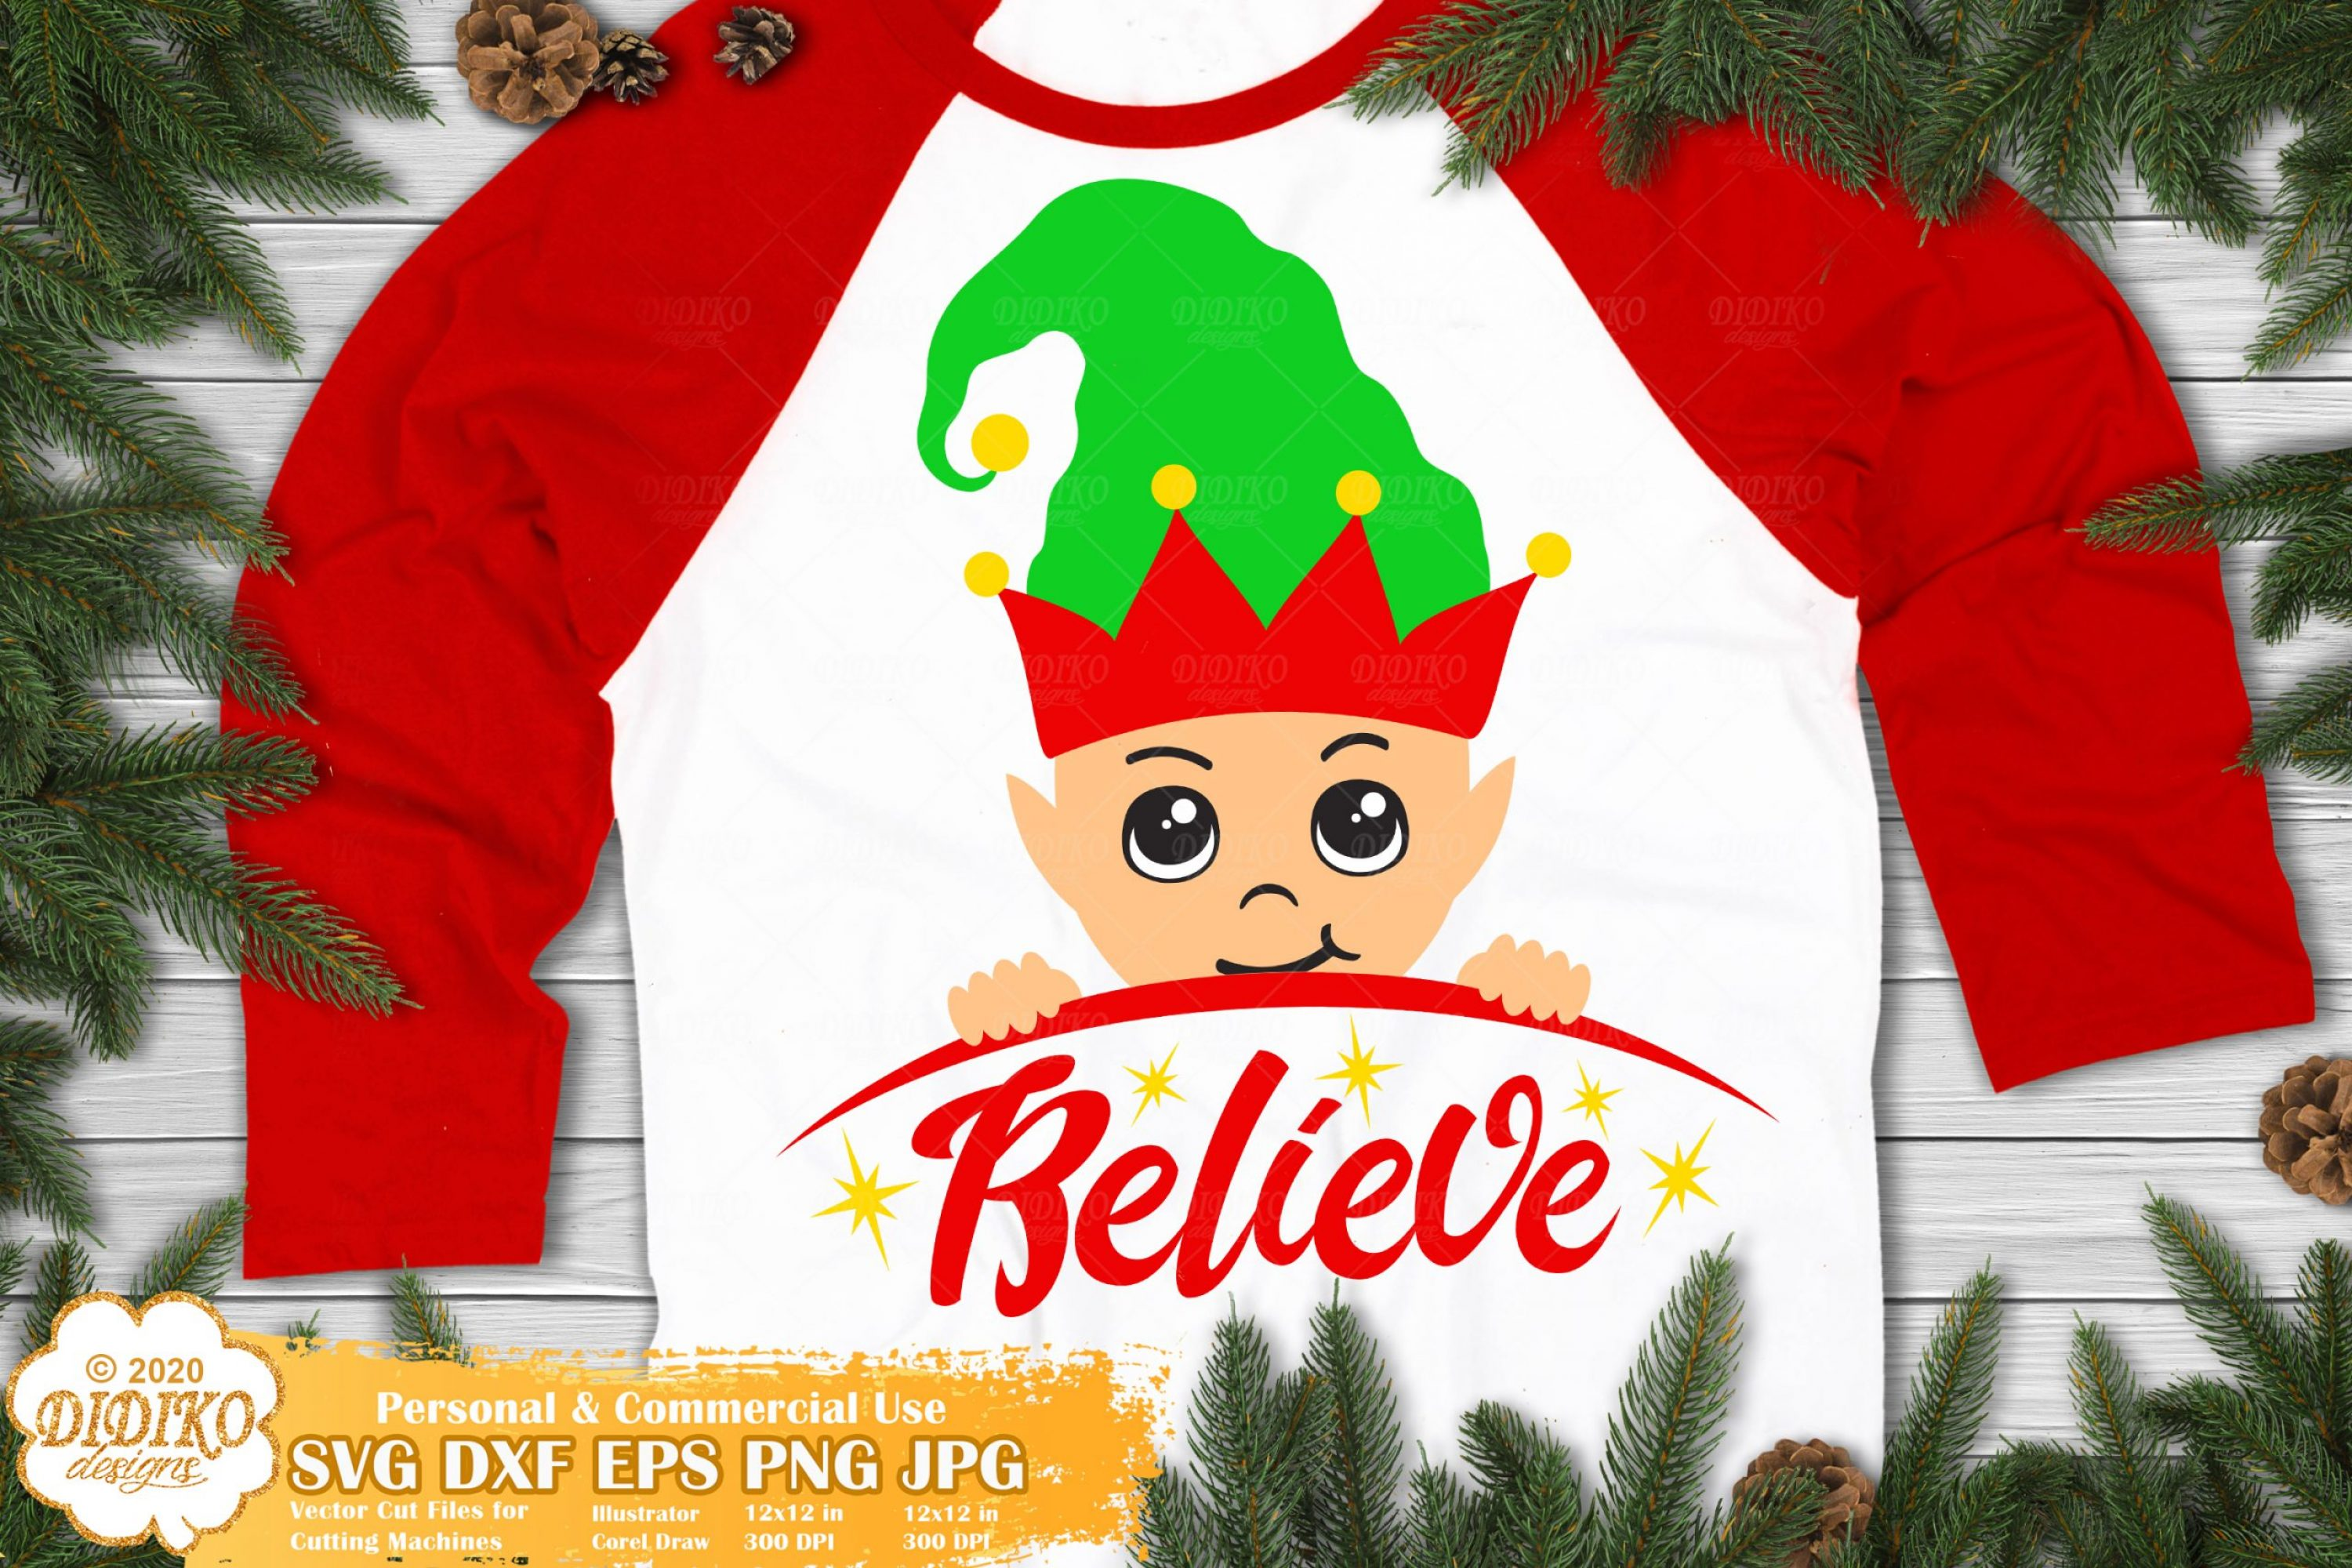 Elf SVG #2 | Believe SVG | Christmas Elf Svg Cricut File